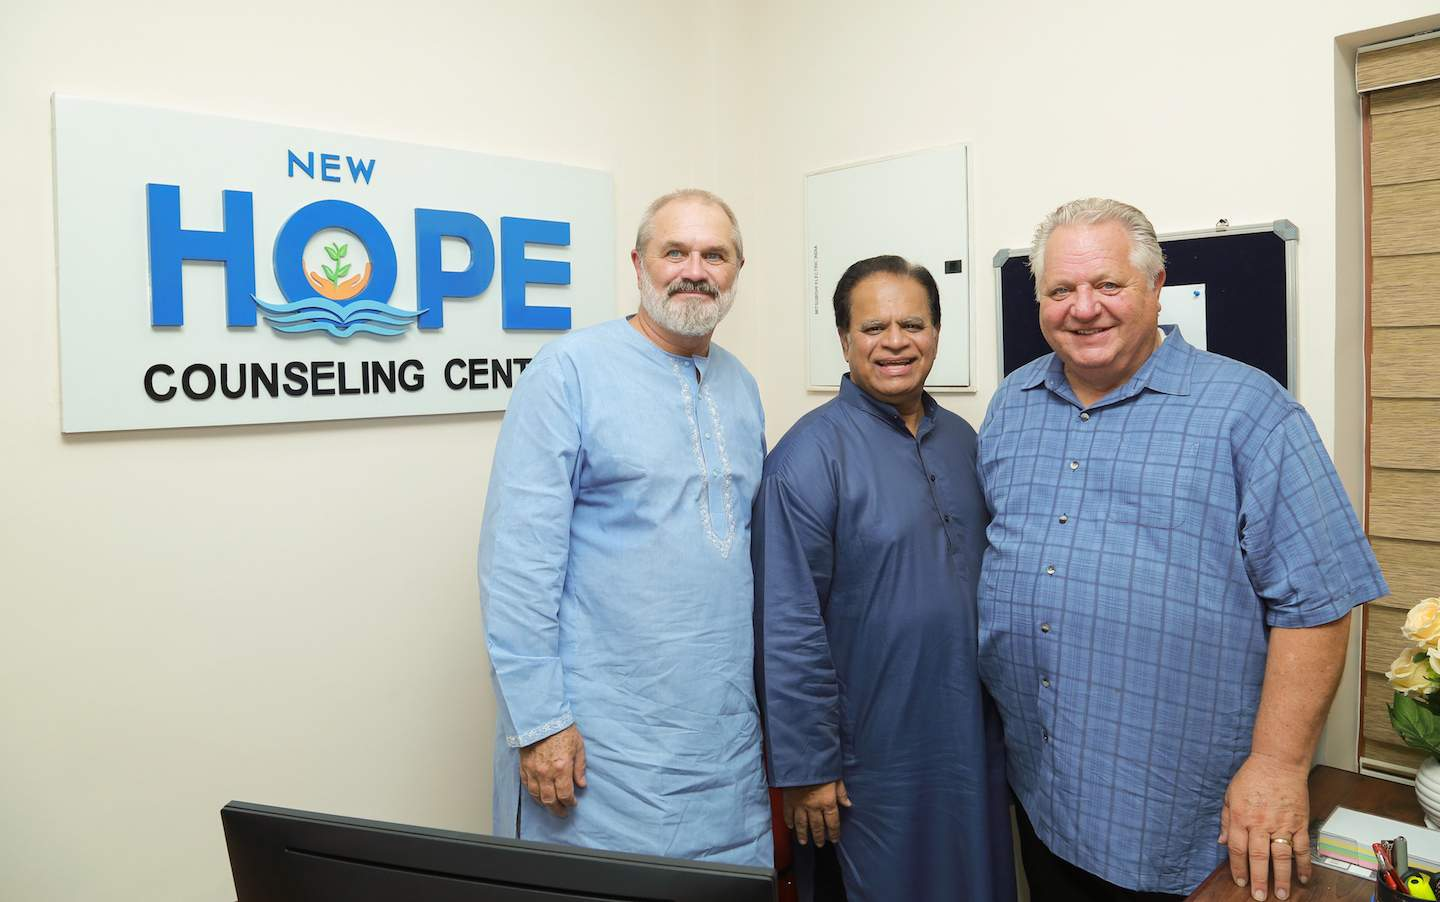 IGO President Valson Abraham (center) leads dedication of the New Hope Counseling Center at India Bible College and Seminary.  Pastors Amos Dodge and Dennis Gallaher, close friends of the school, participated in the dedication.